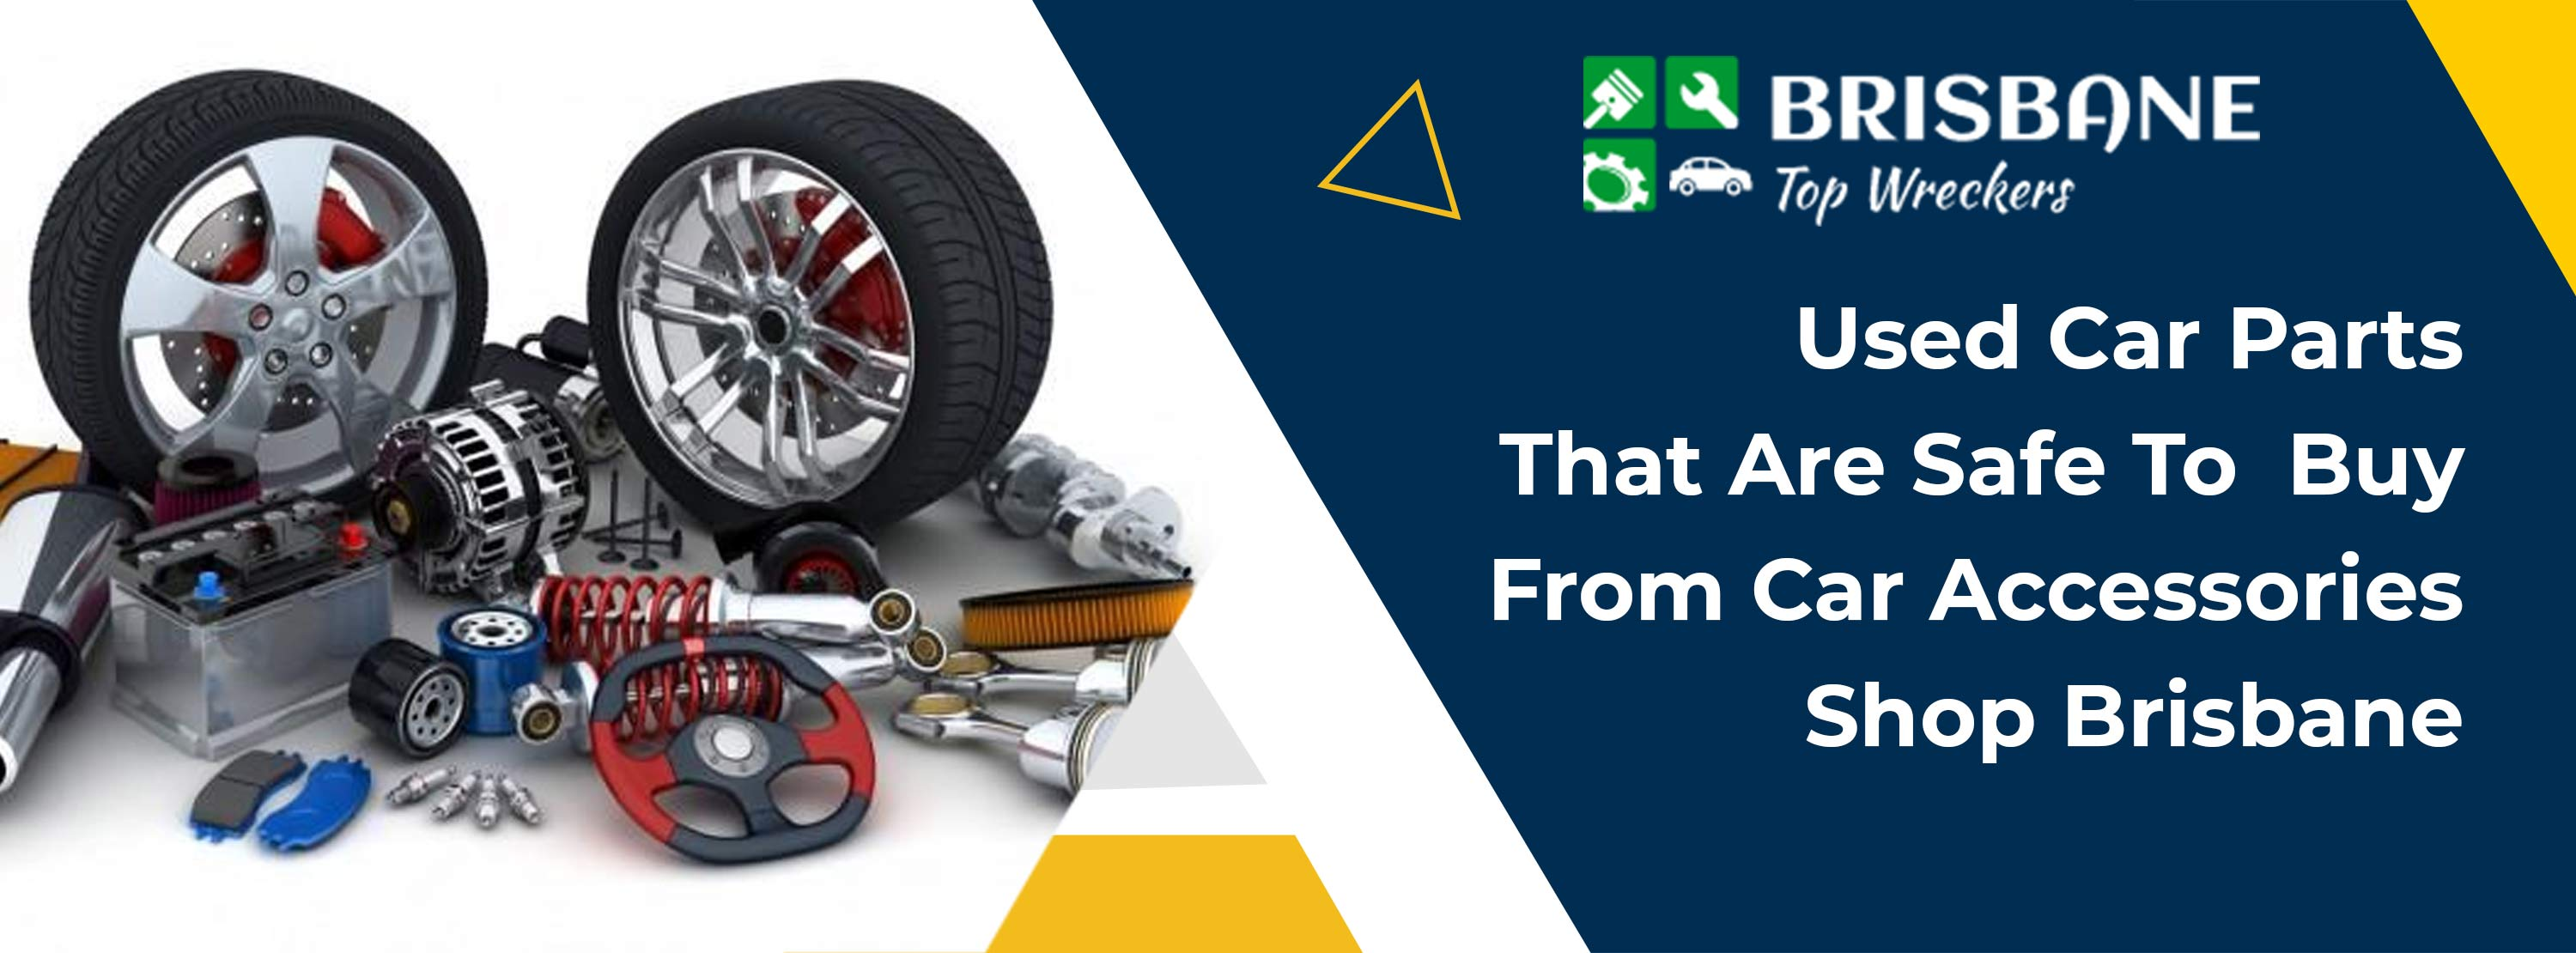 Used Car Parts That Are Safe To Buy From Car Accessories Shop Brisbane